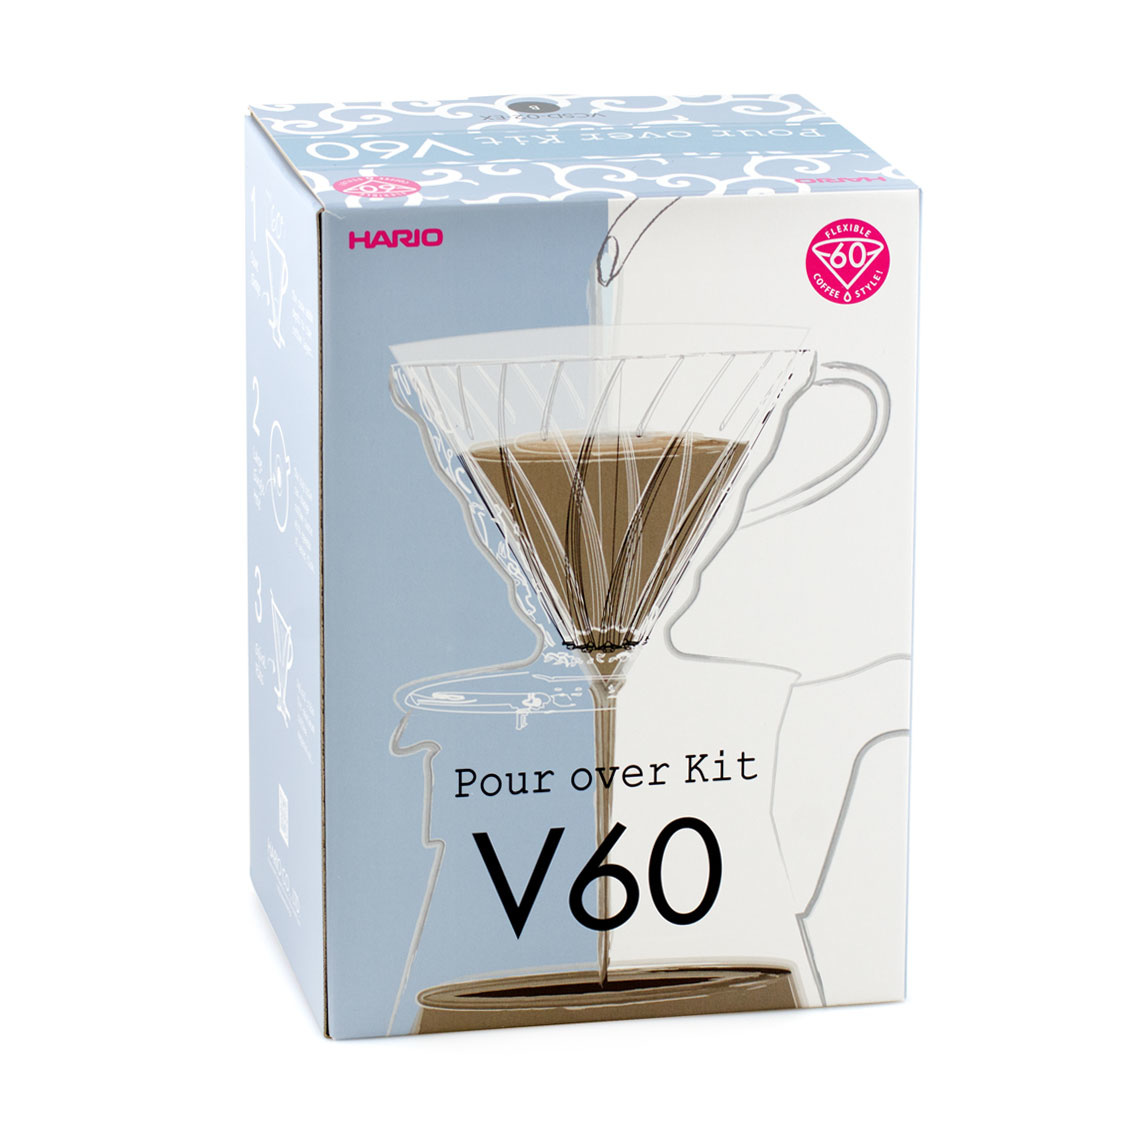 Hario V60 Pour Over Kit - Limited Edition-1